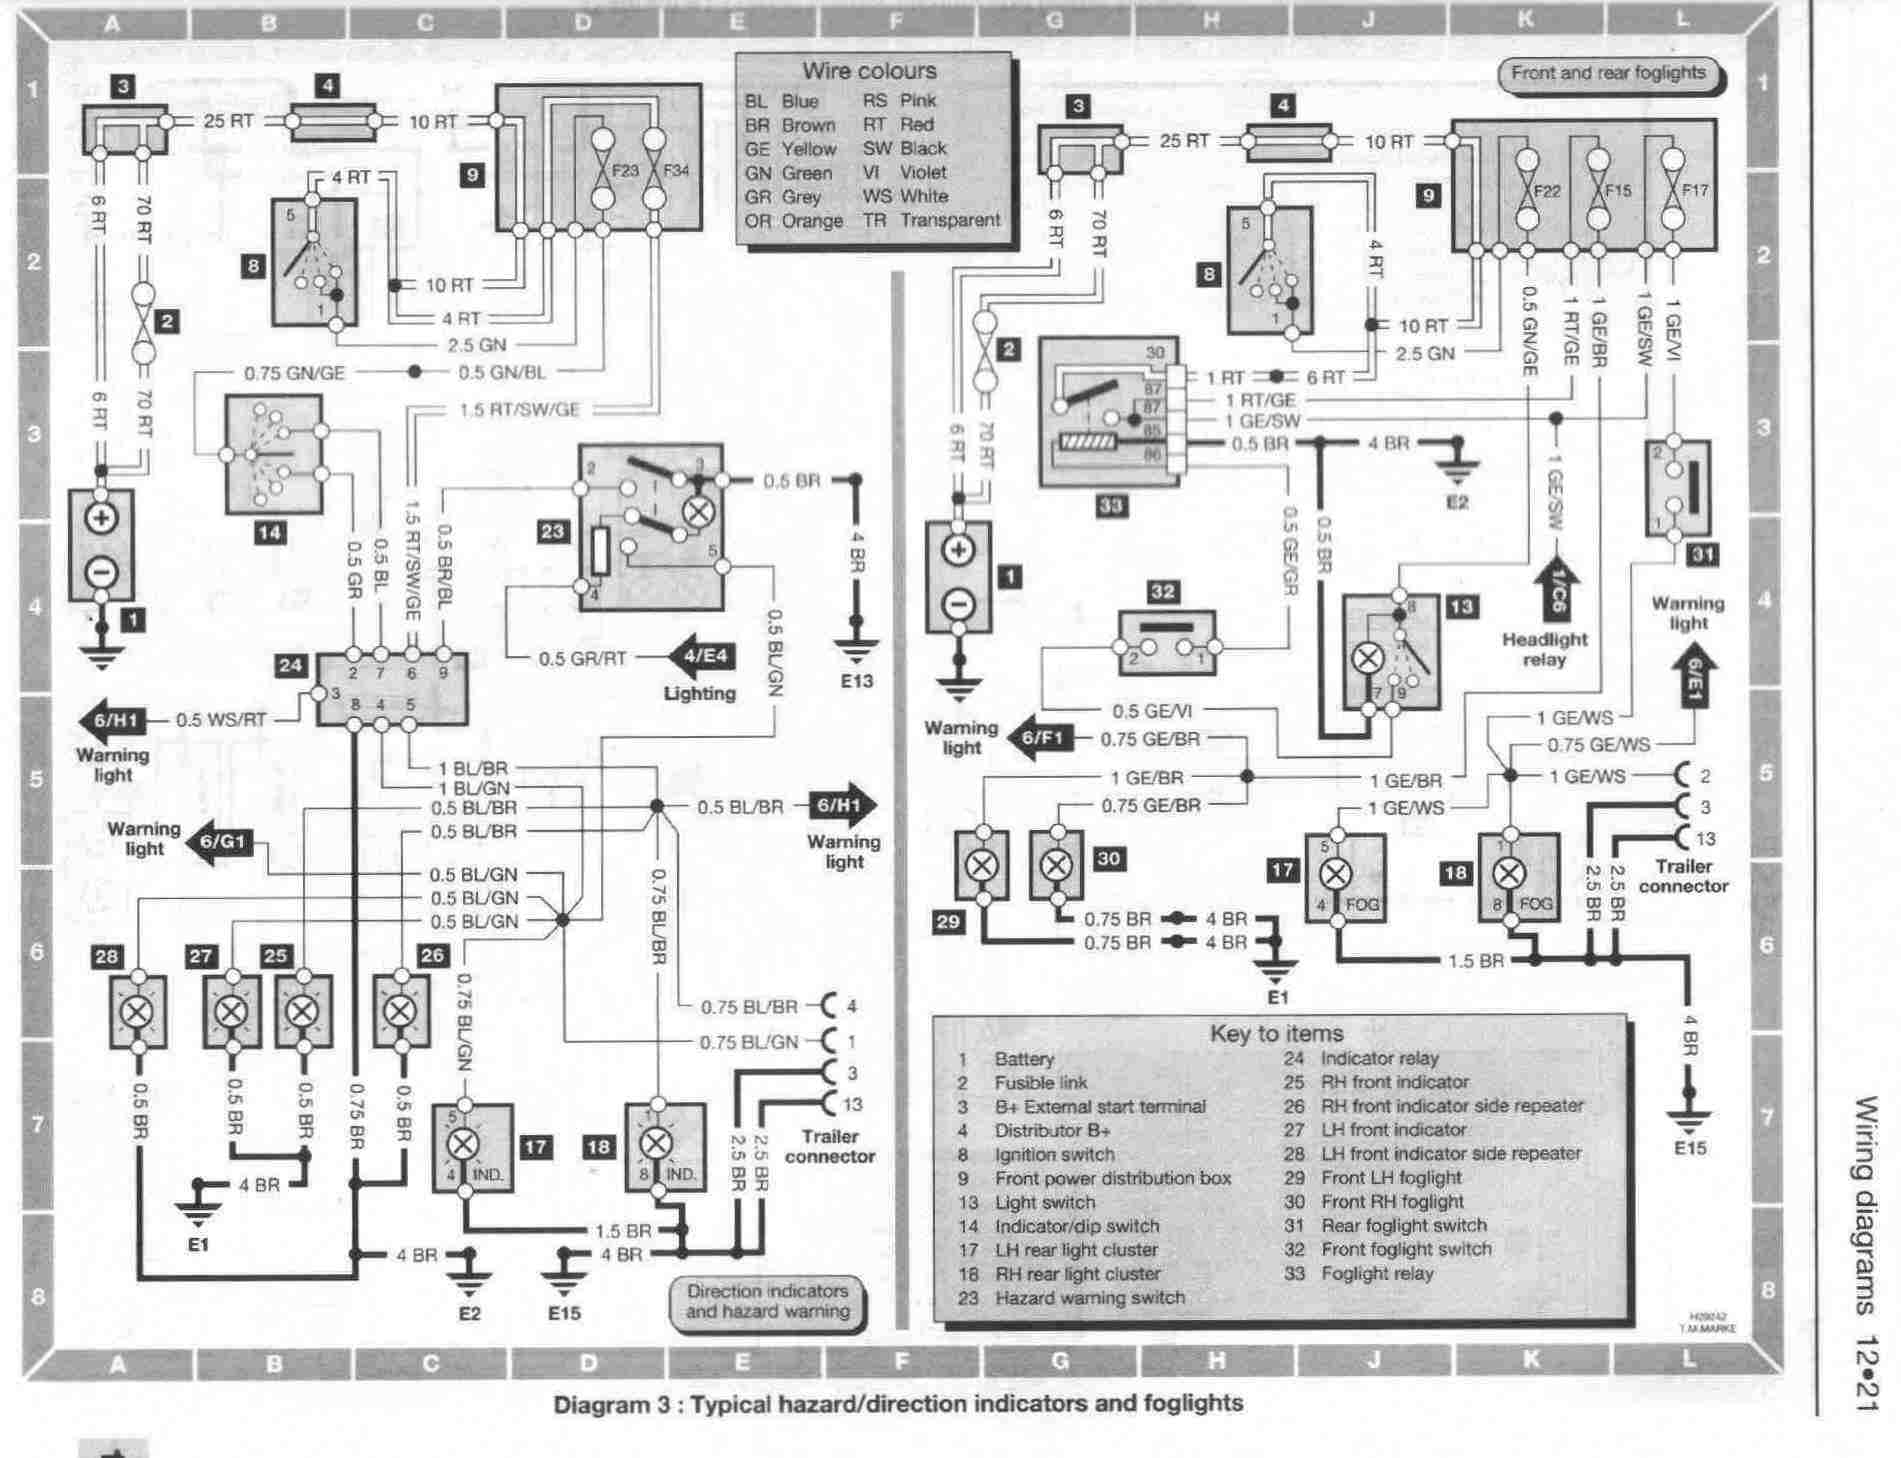 bmw 328i power windows wiring diagram wiring diagram all data Bmw E23 Wiring Diagram power windows wiring diagram for bmw 328i wiring diagram buick lacrosse wiring diagram bmw 328i power windows wiring diagram